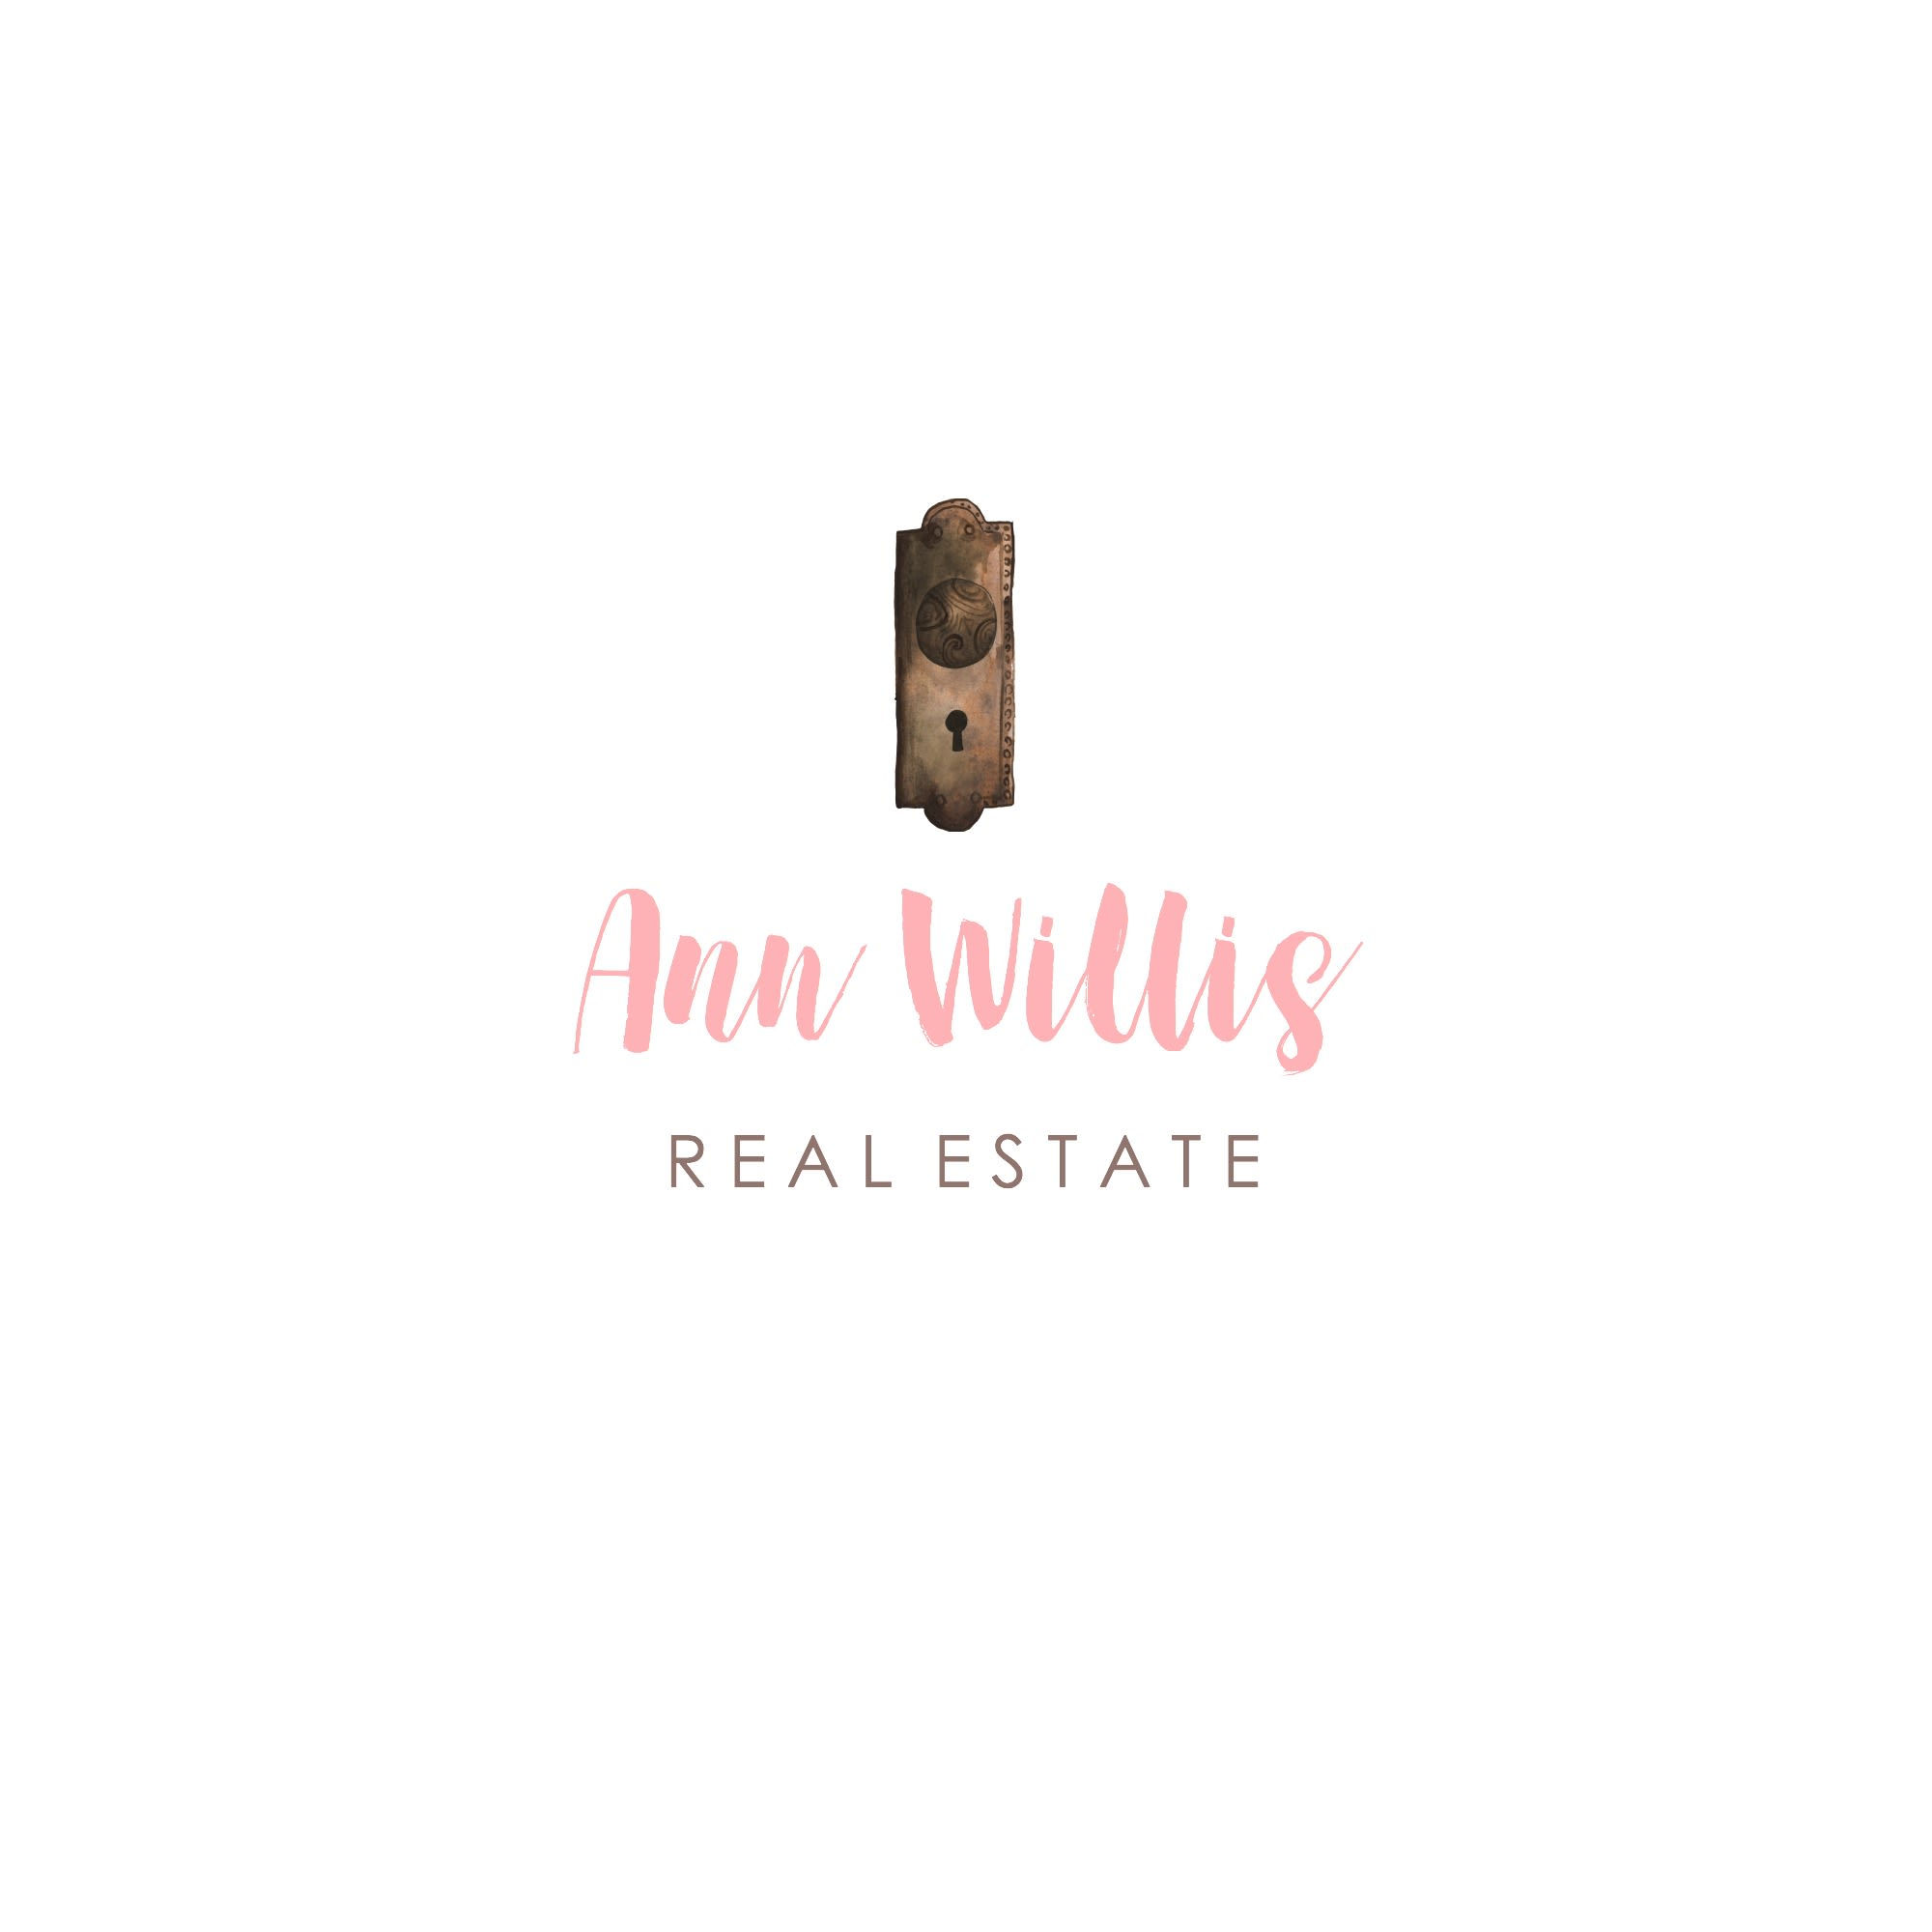 Ann Willis, Realtor